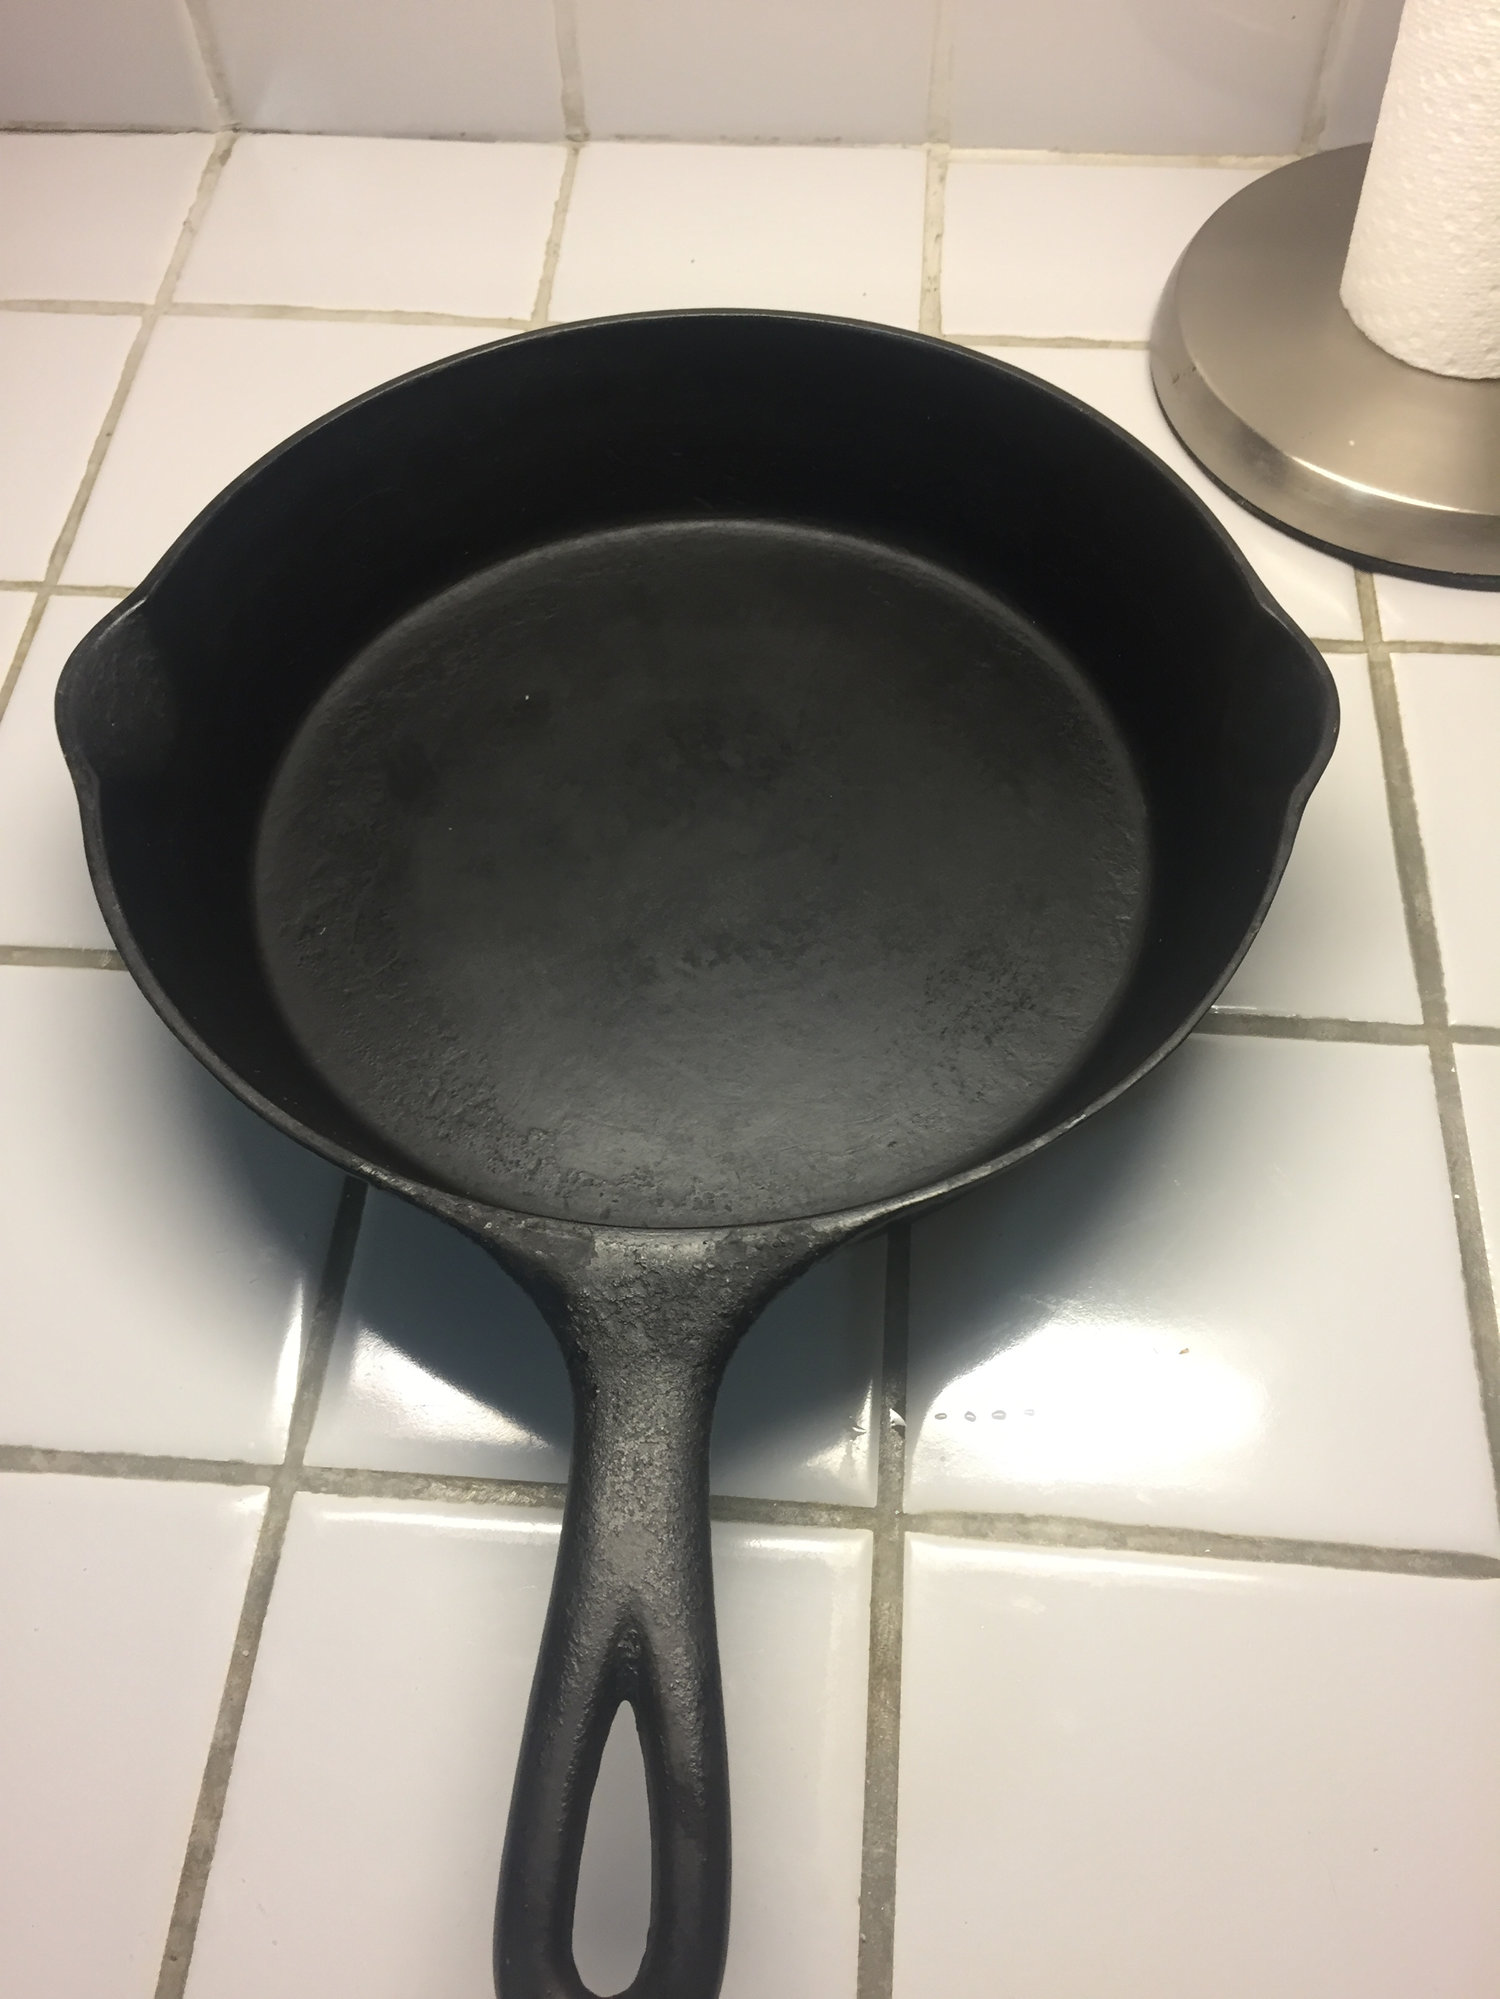 wagner ware cast iron skillet markings